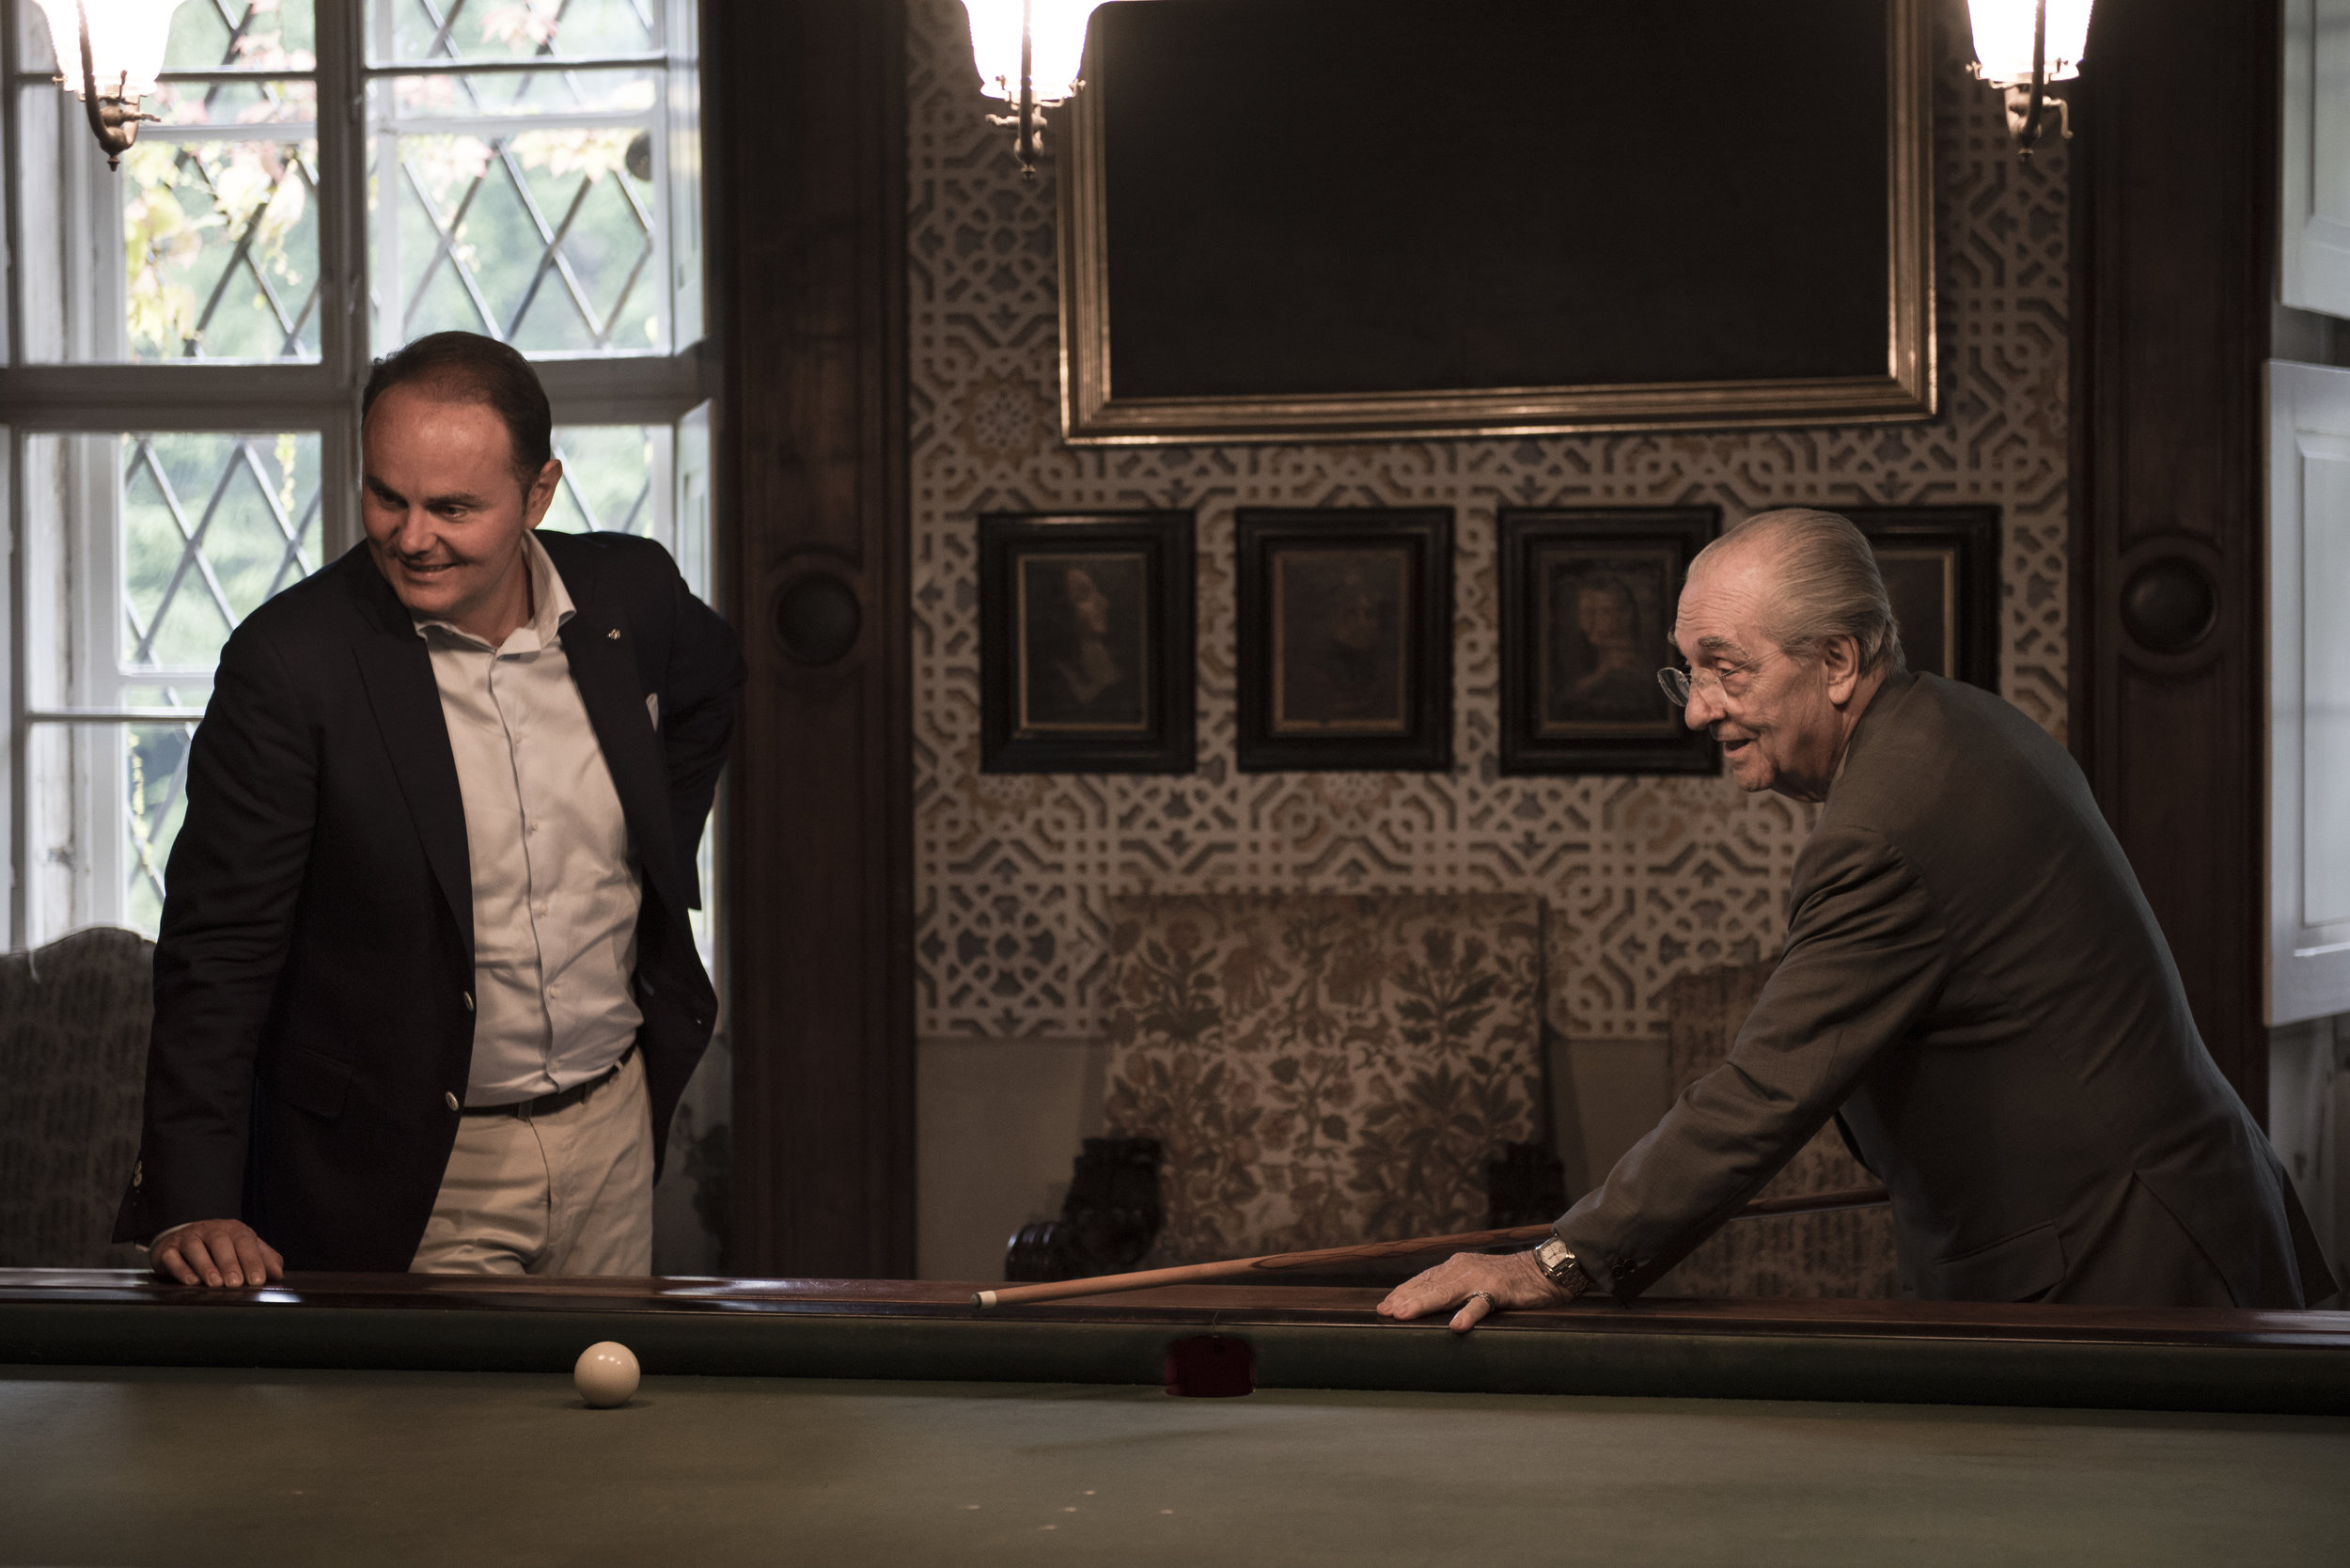 Marchesi shooting pool, in a still from the movie